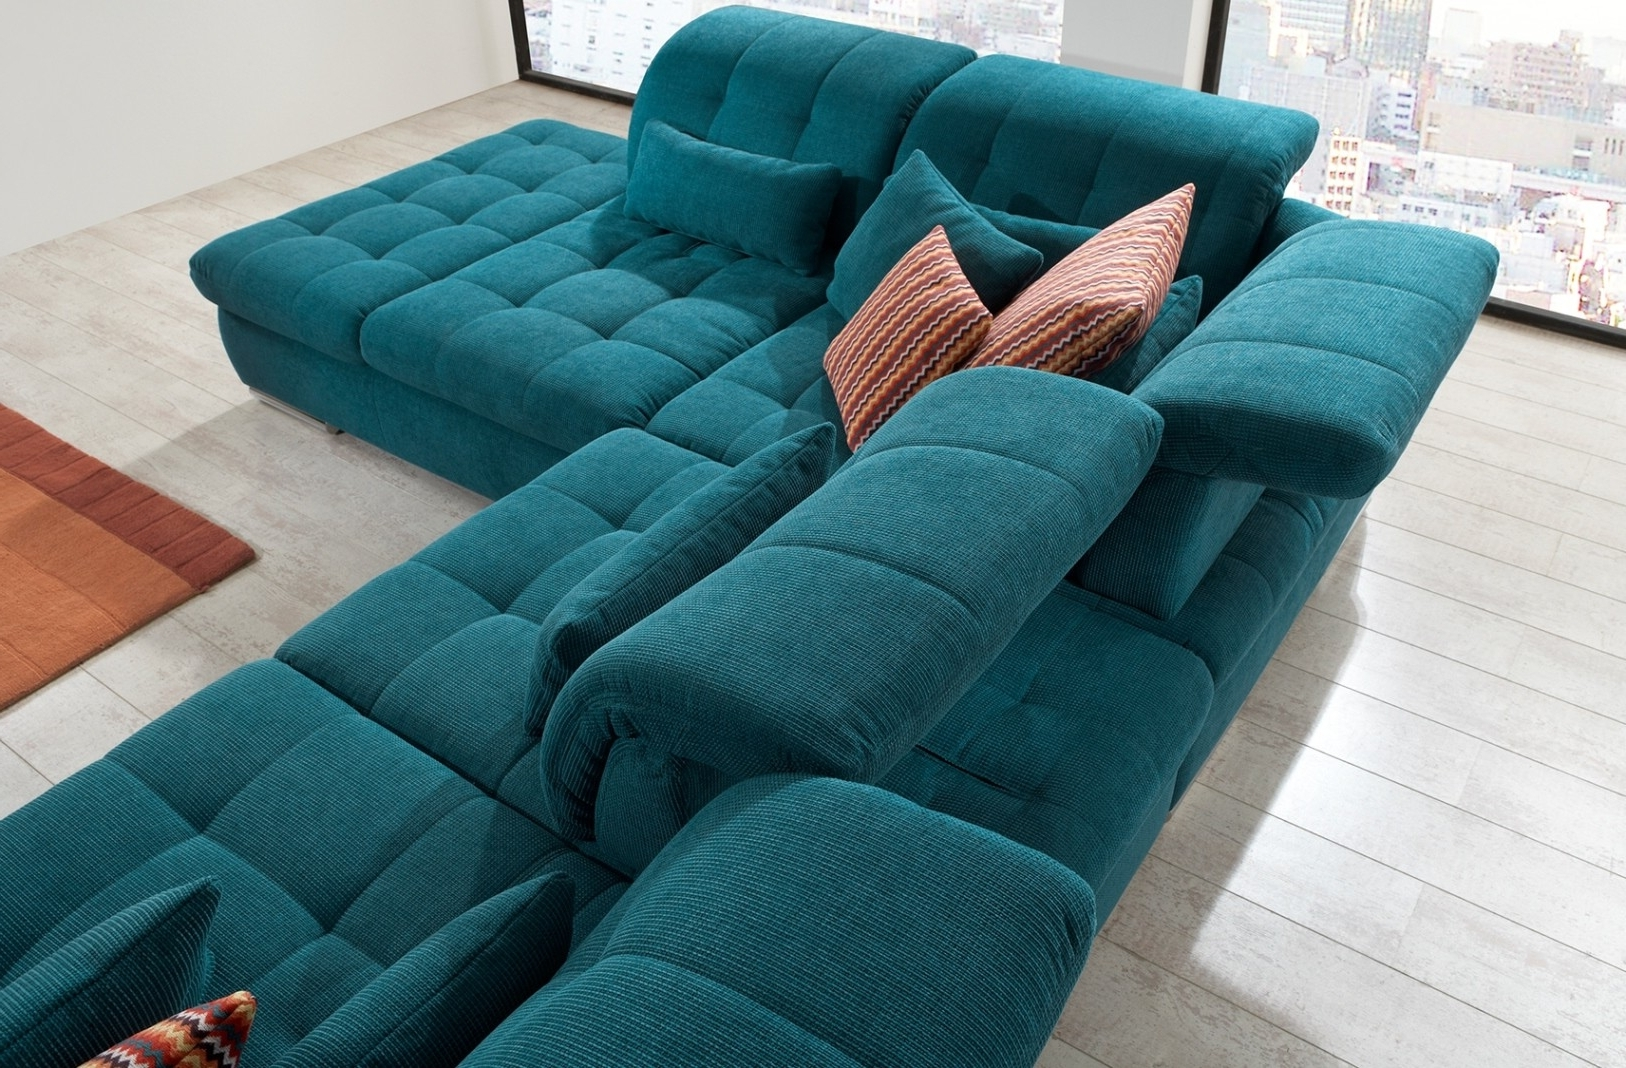 Green Sectional Sofas Regarding Best And Newest Alpine Sectional Sofa In Green Fabric (View 8 of 15)